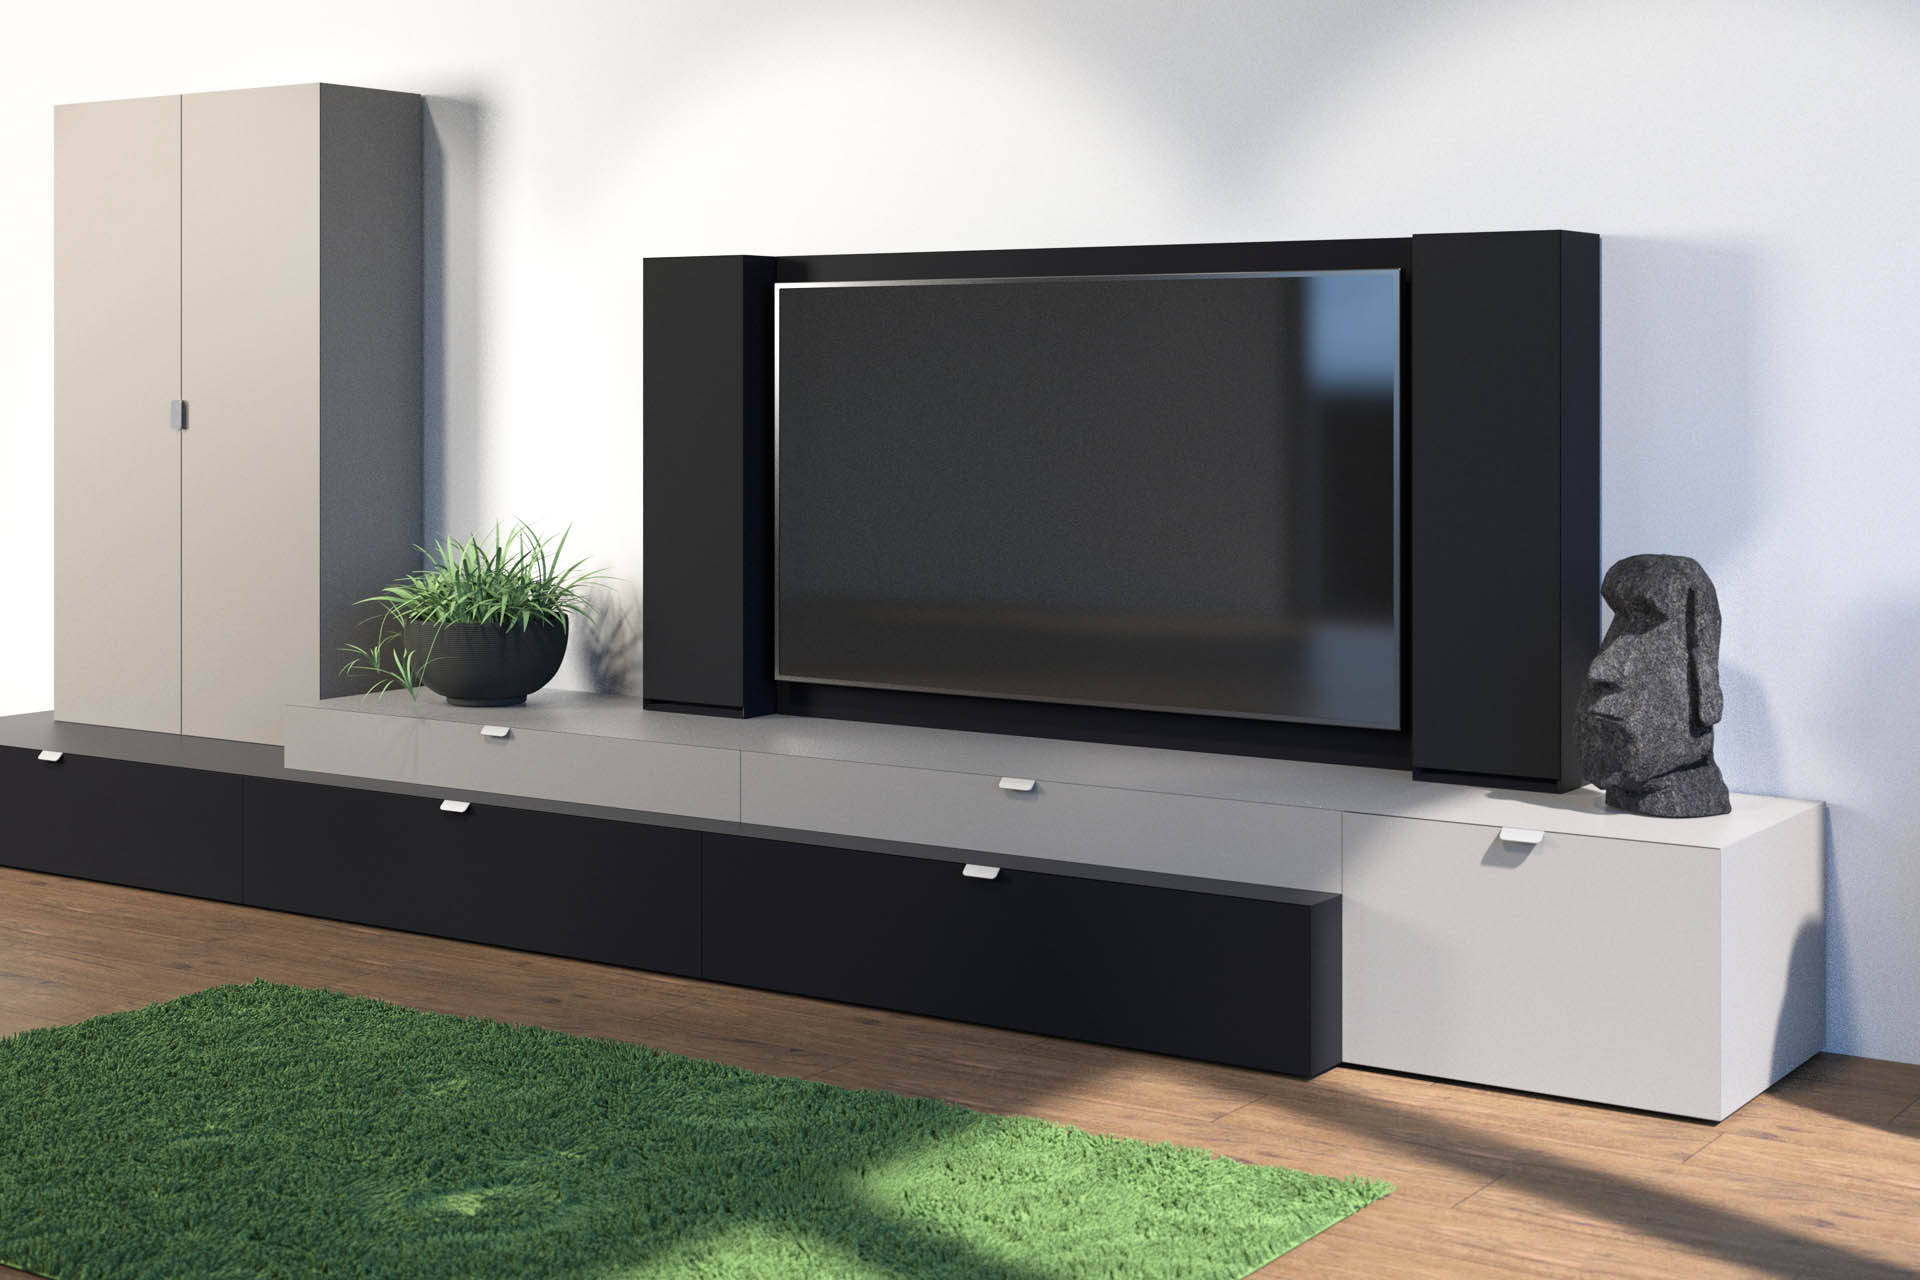 fernseher in der wand versenken fernseher an wand montieren die eleganteste variante heimkino. Black Bedroom Furniture Sets. Home Design Ideas